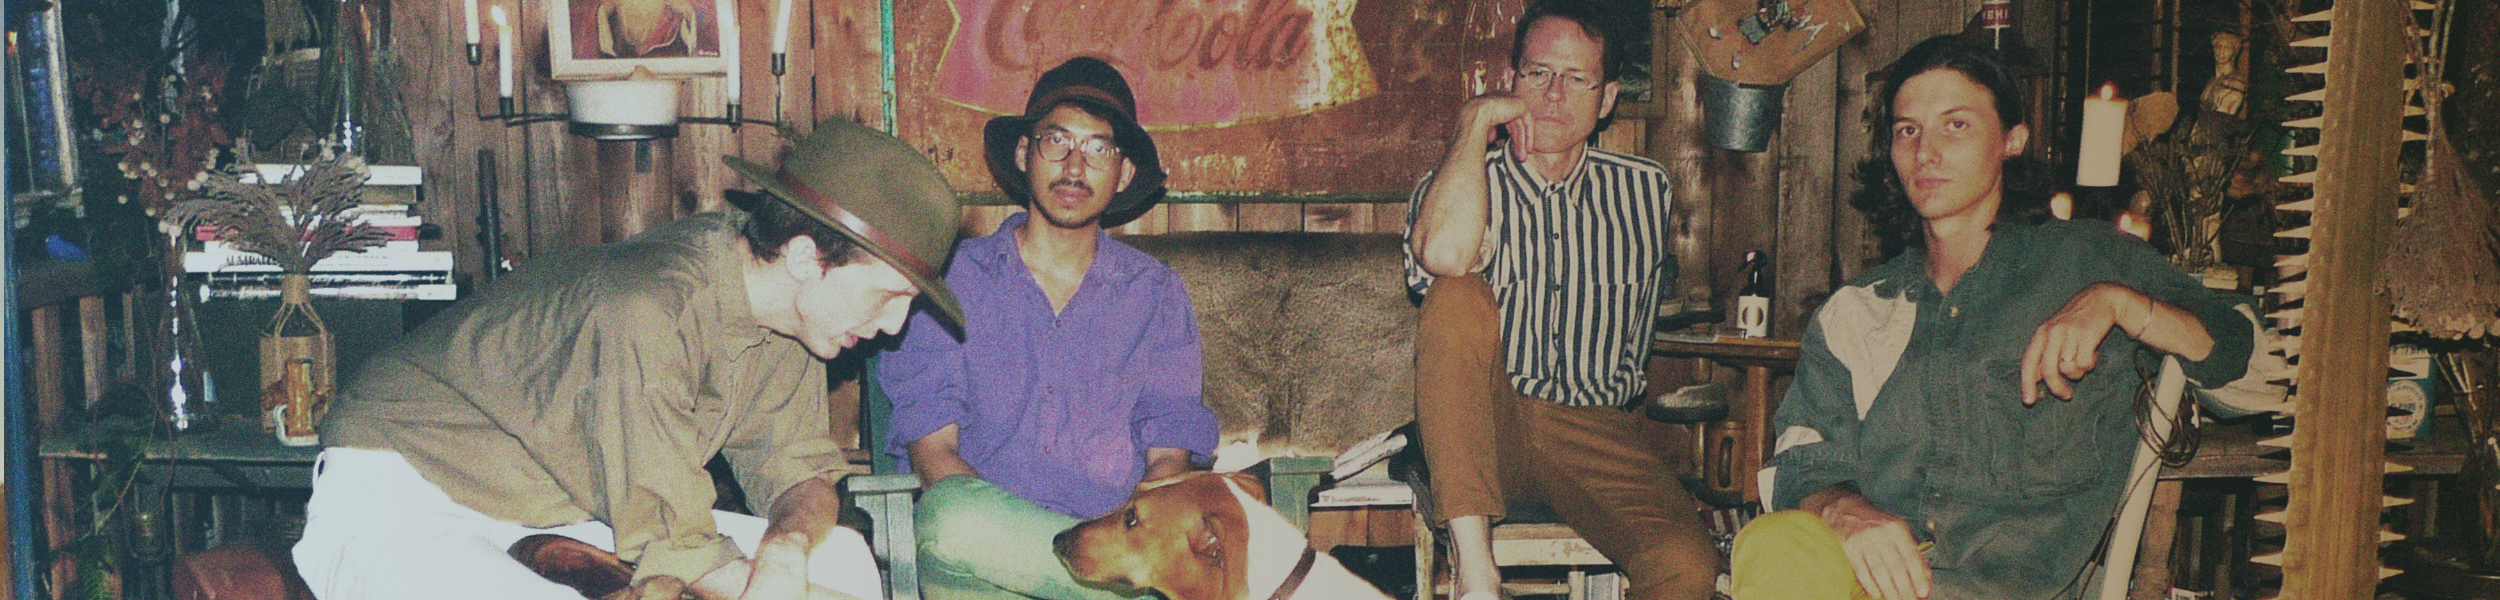 Deerhunter - New Tour Dates, Including Coachella and Primavera